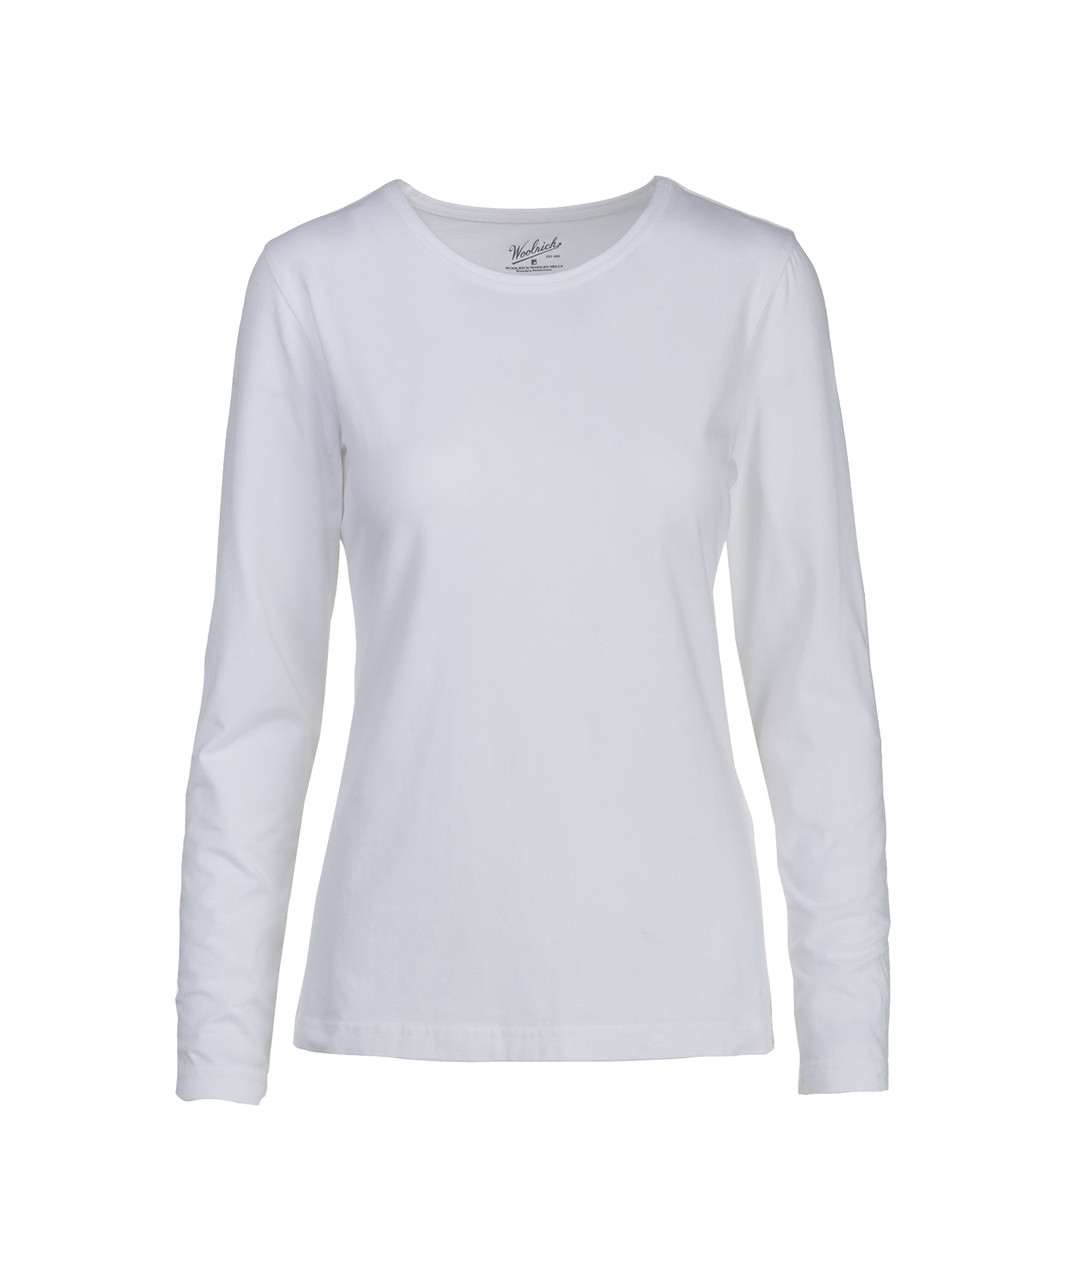 4a6a5a7736b Women s Laureldale Long Sleeve T-Shirt. 7003 model WHITE